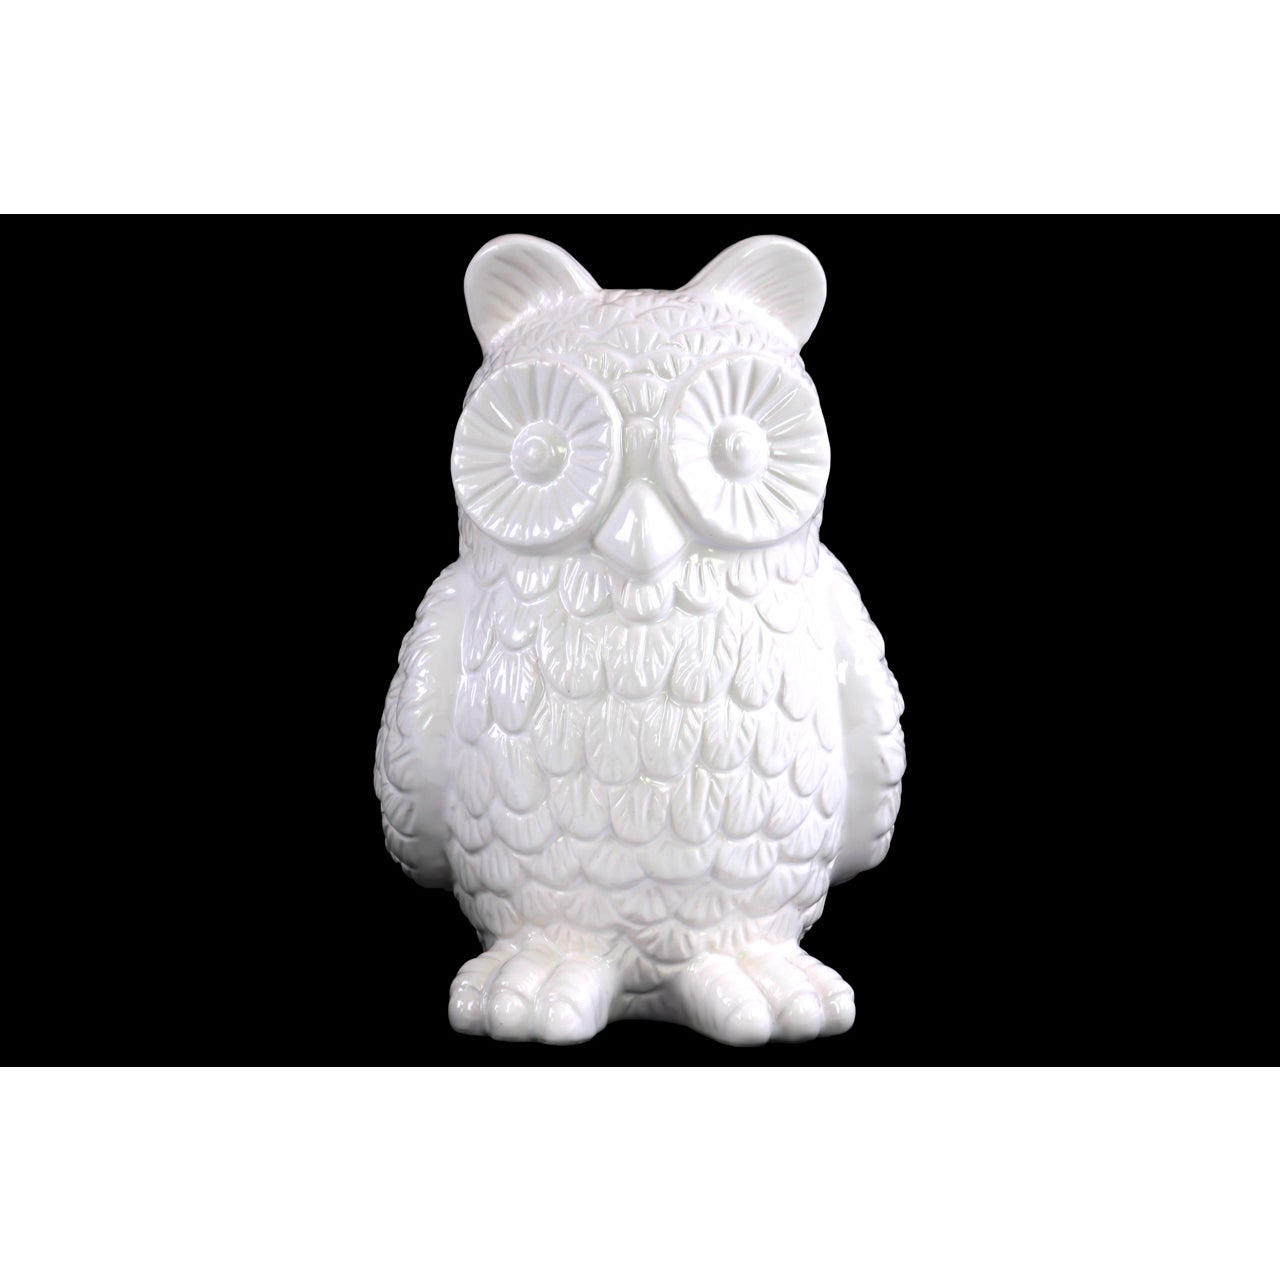 Gloss White Ceramic Owl Figurine Free Shipping On Orders Over 45 11017302